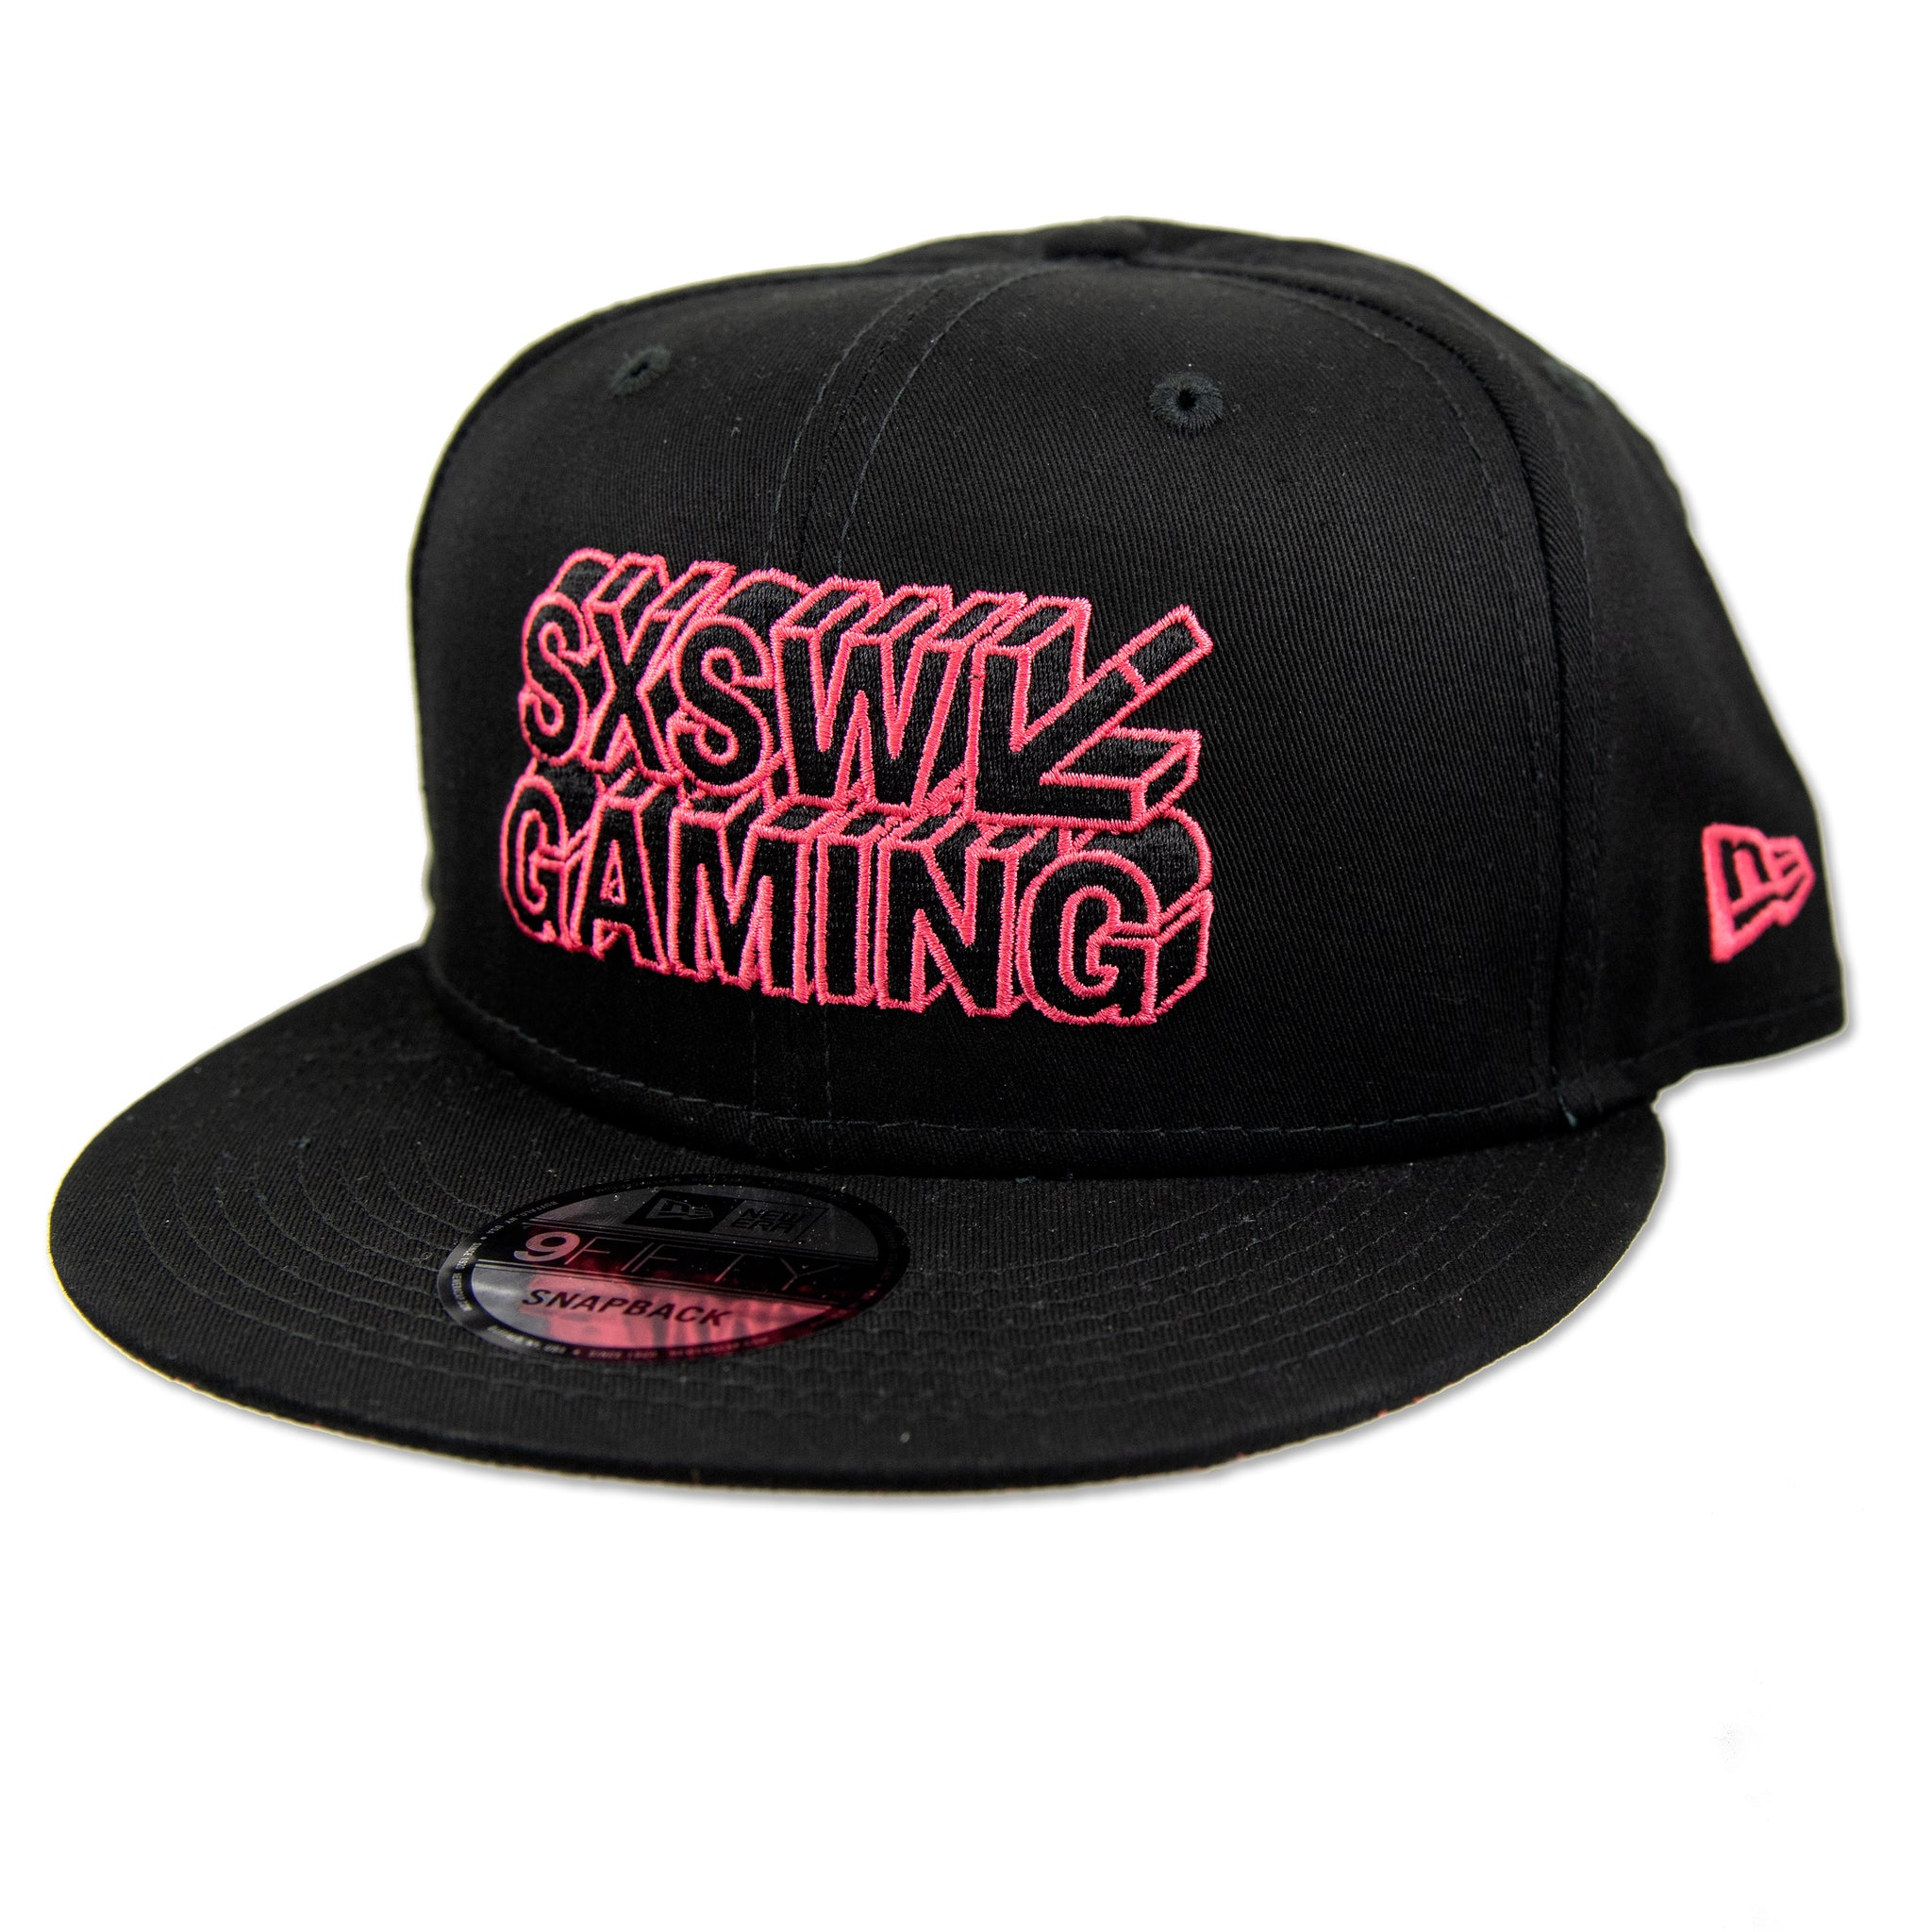 GAMING FLAT BILL IN BLACK BY NEW ERA